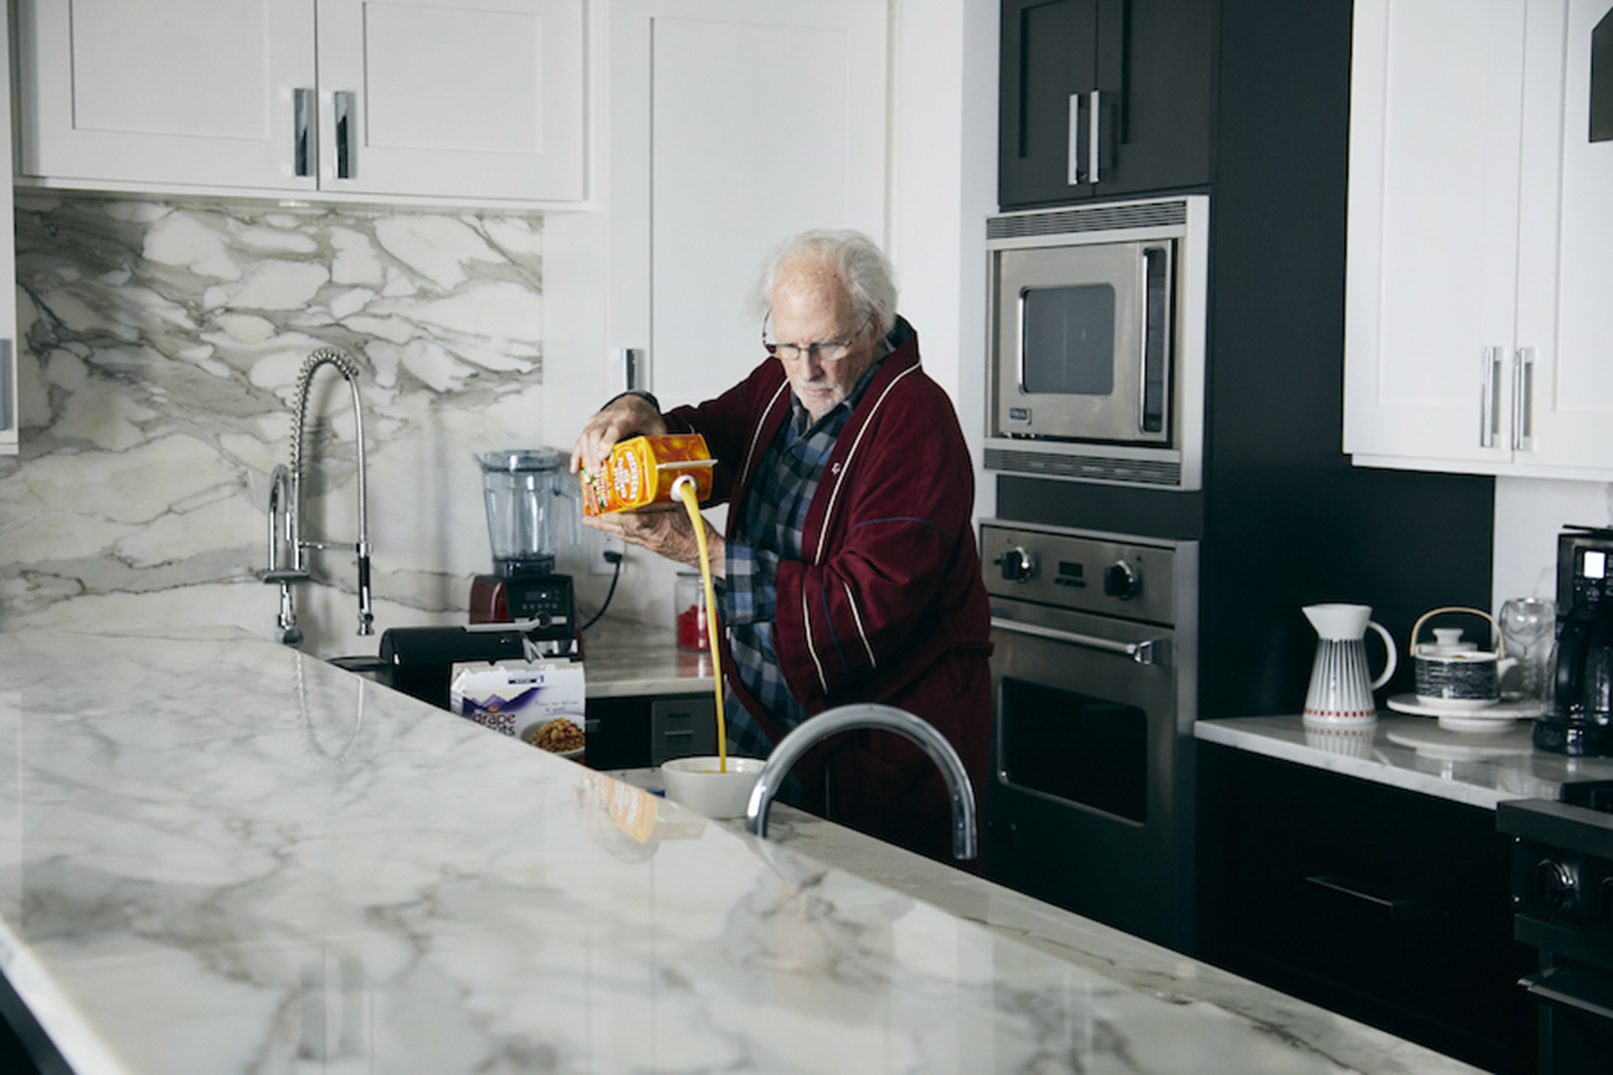 A confused Richard (Bruce Dern) attempts to prepare breakfast in THE ARTIST'S WIFE. Photo by Michael Lavine.